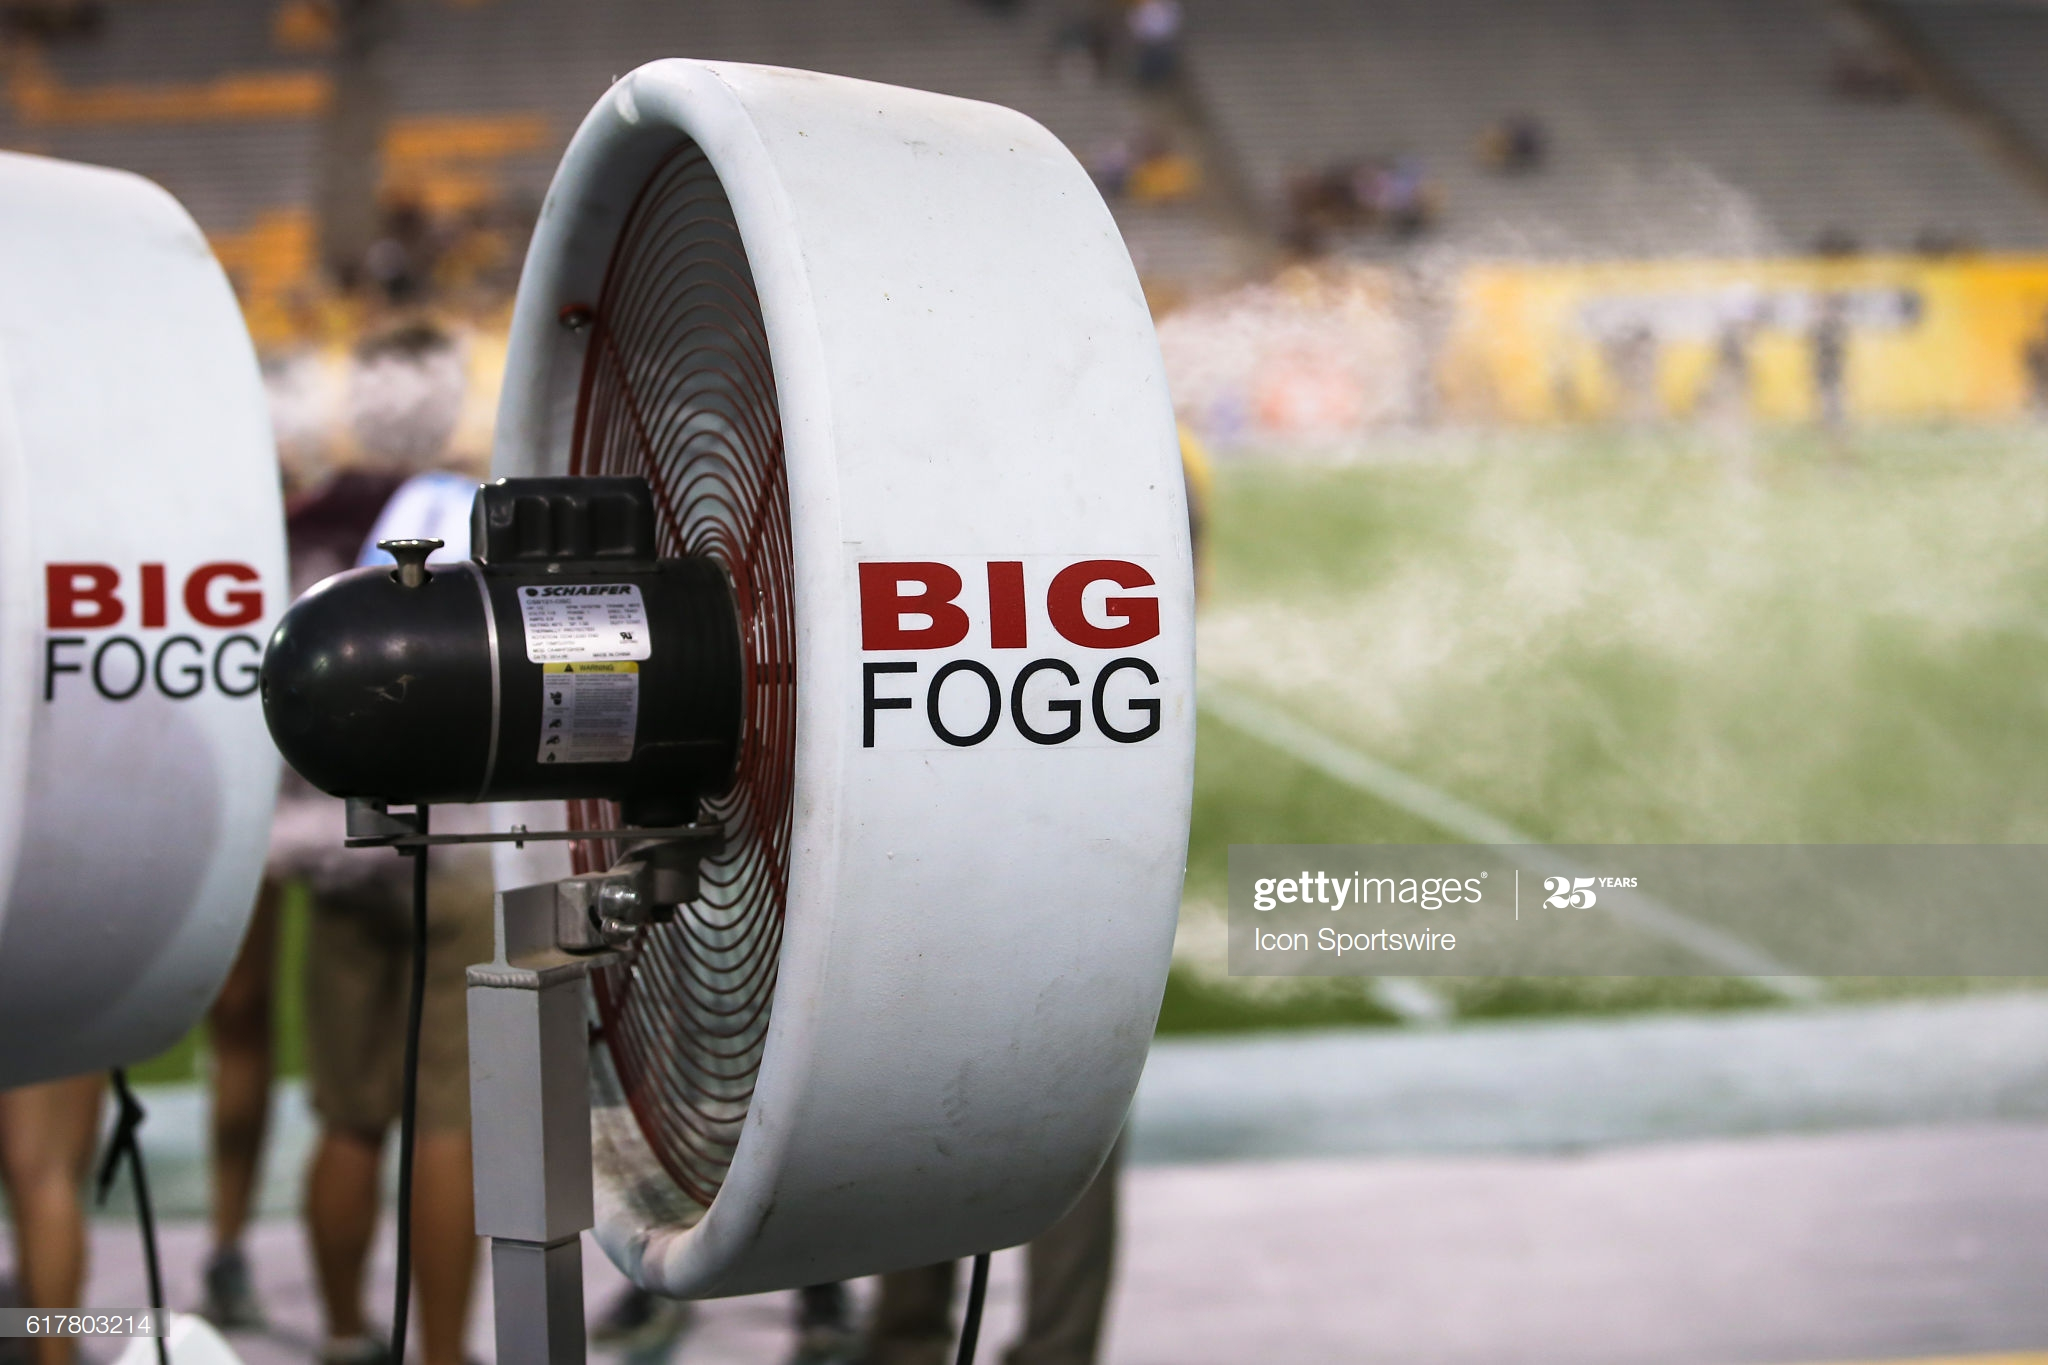 HOW DID SPORTS FIRST USE MISTING FANS TO COOL ATHLETES